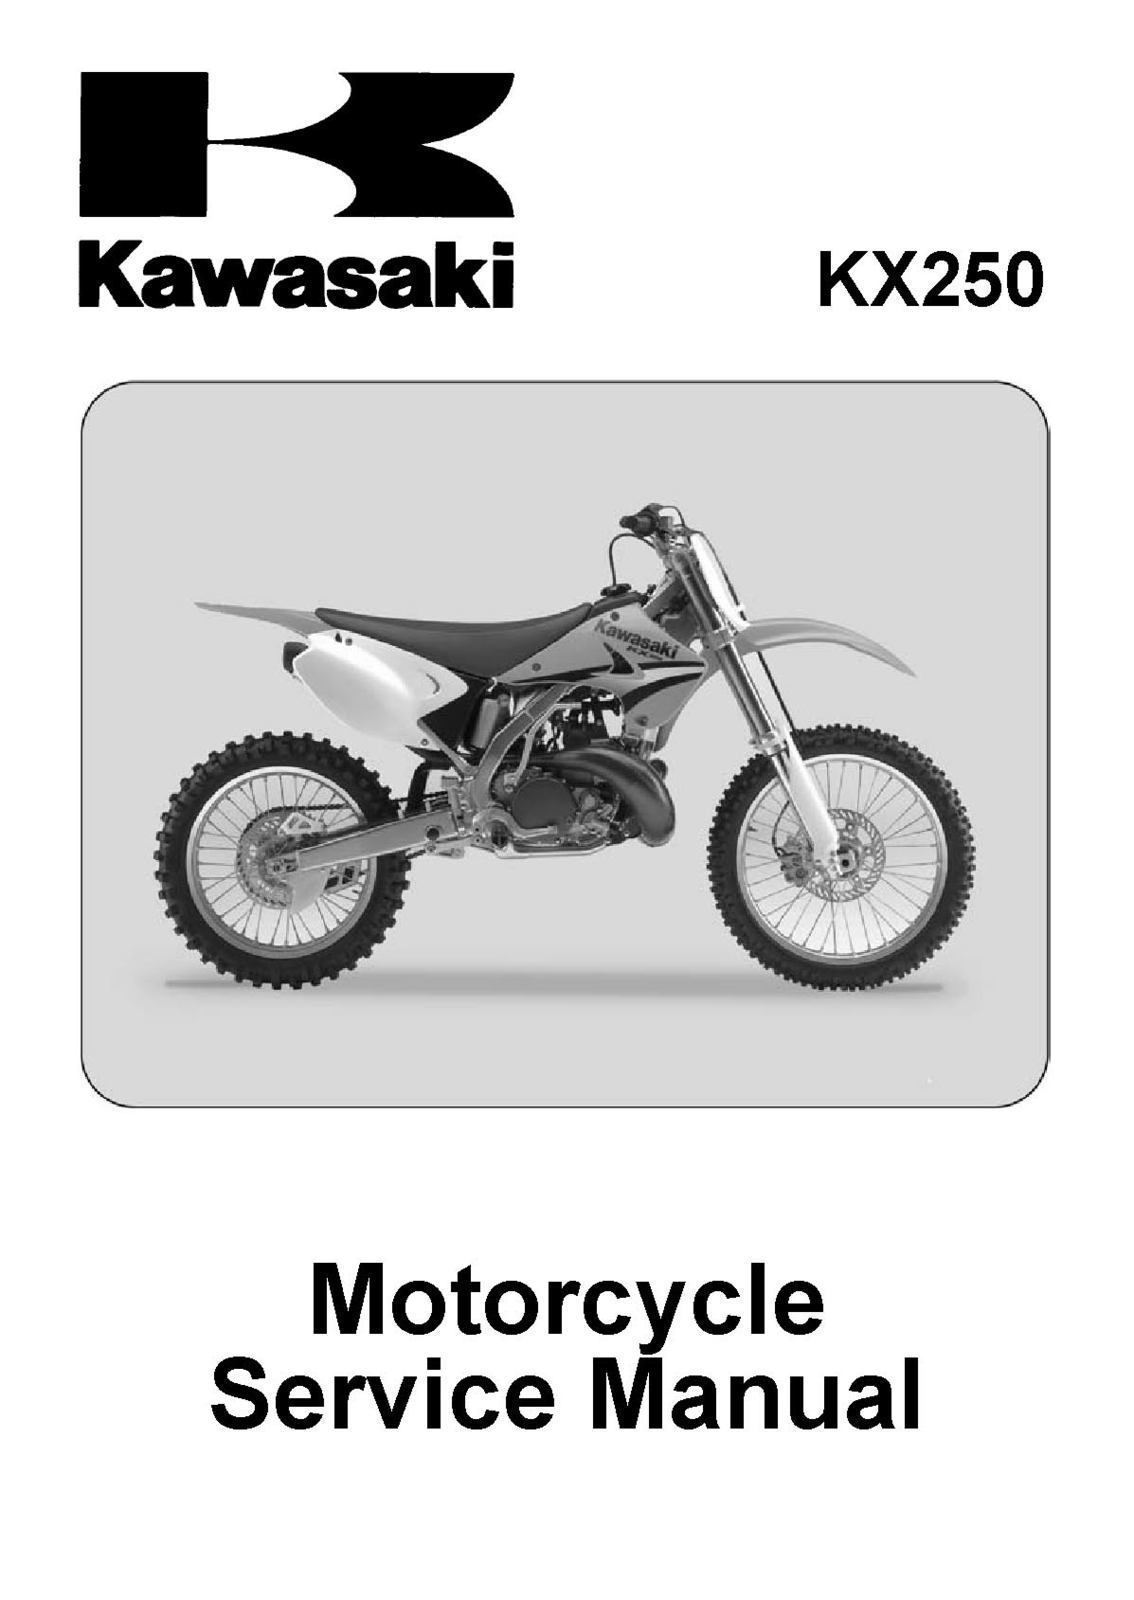 Kawasaki KX 250 KX250 R Shop Service Repair and 44 similar items. Kx250r7f  2005 2007 kx250